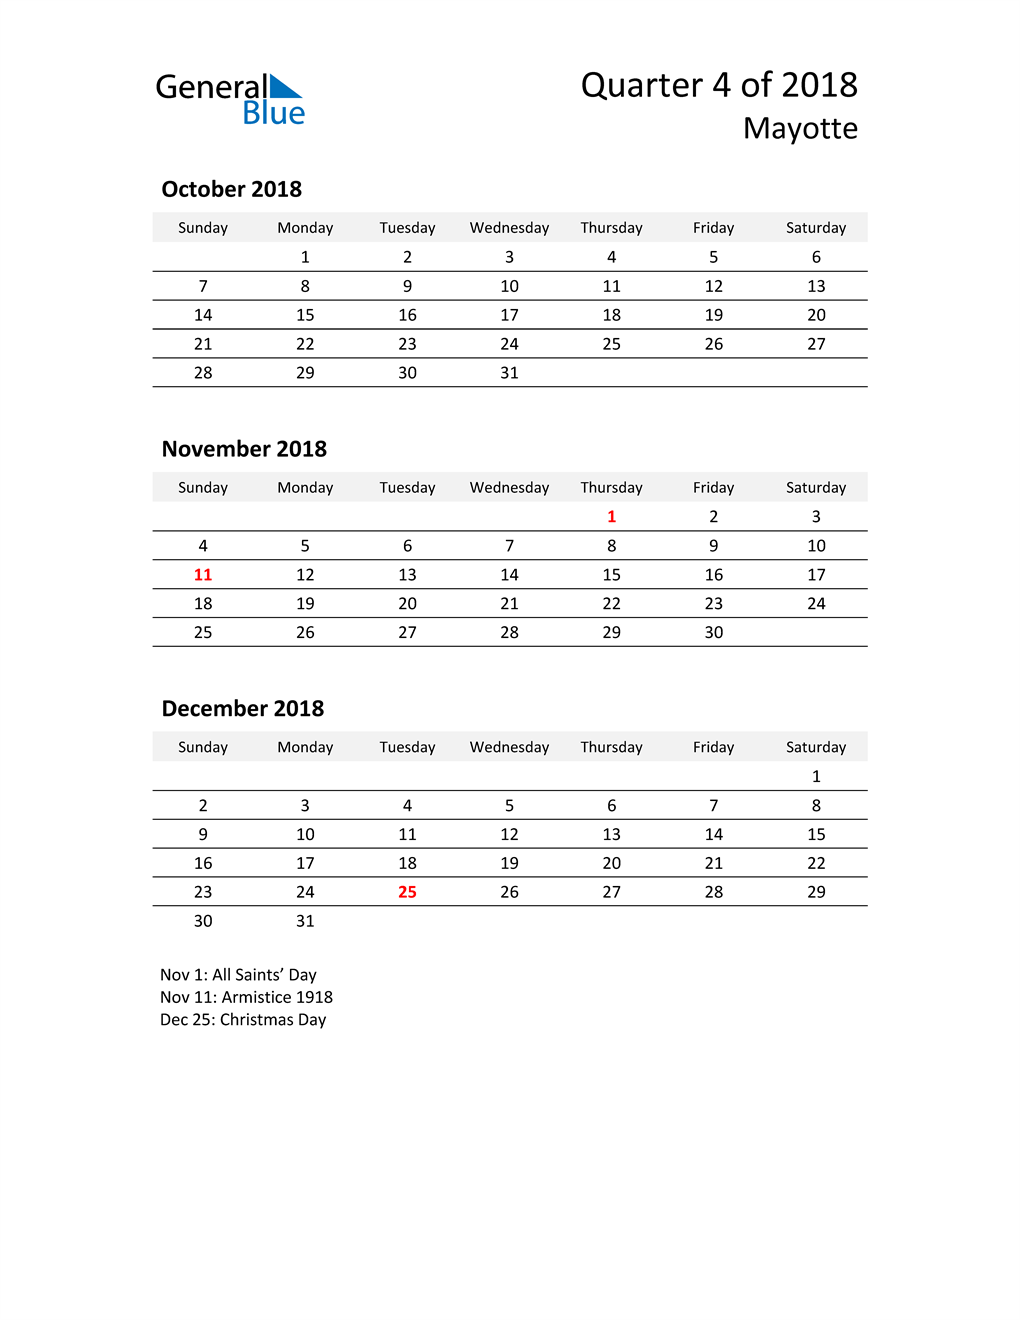 2018 Three-Month Calendar for Mayotte